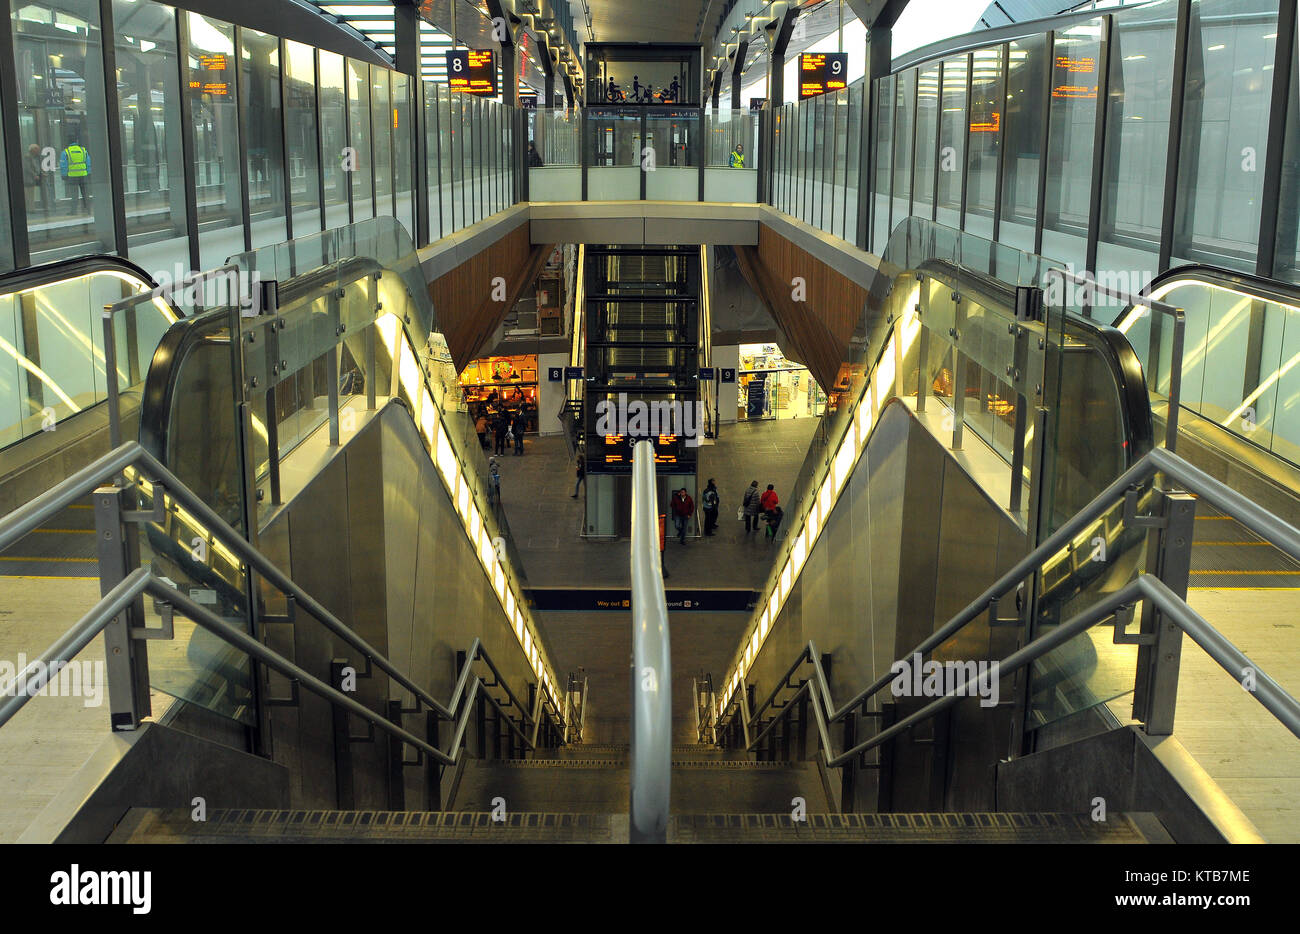 the staircases and escalators at the new London bridge railway station. Network rail infrastructure improvements - Stock Image